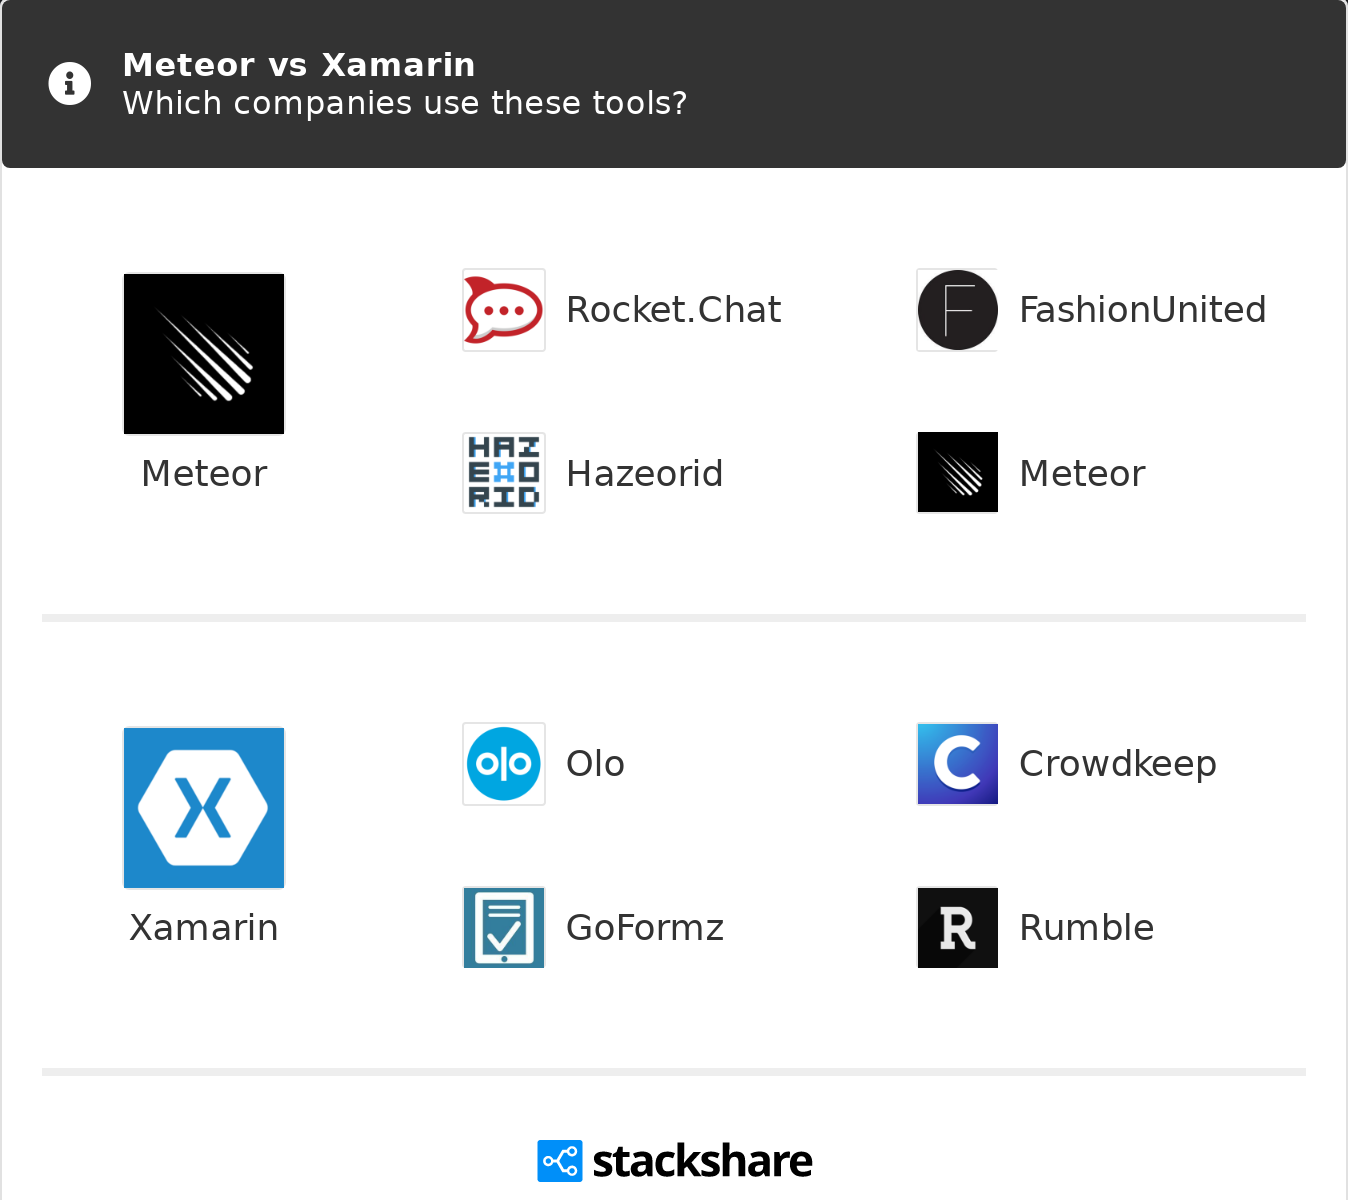 Meteor vs Xamarin   What are the differences?